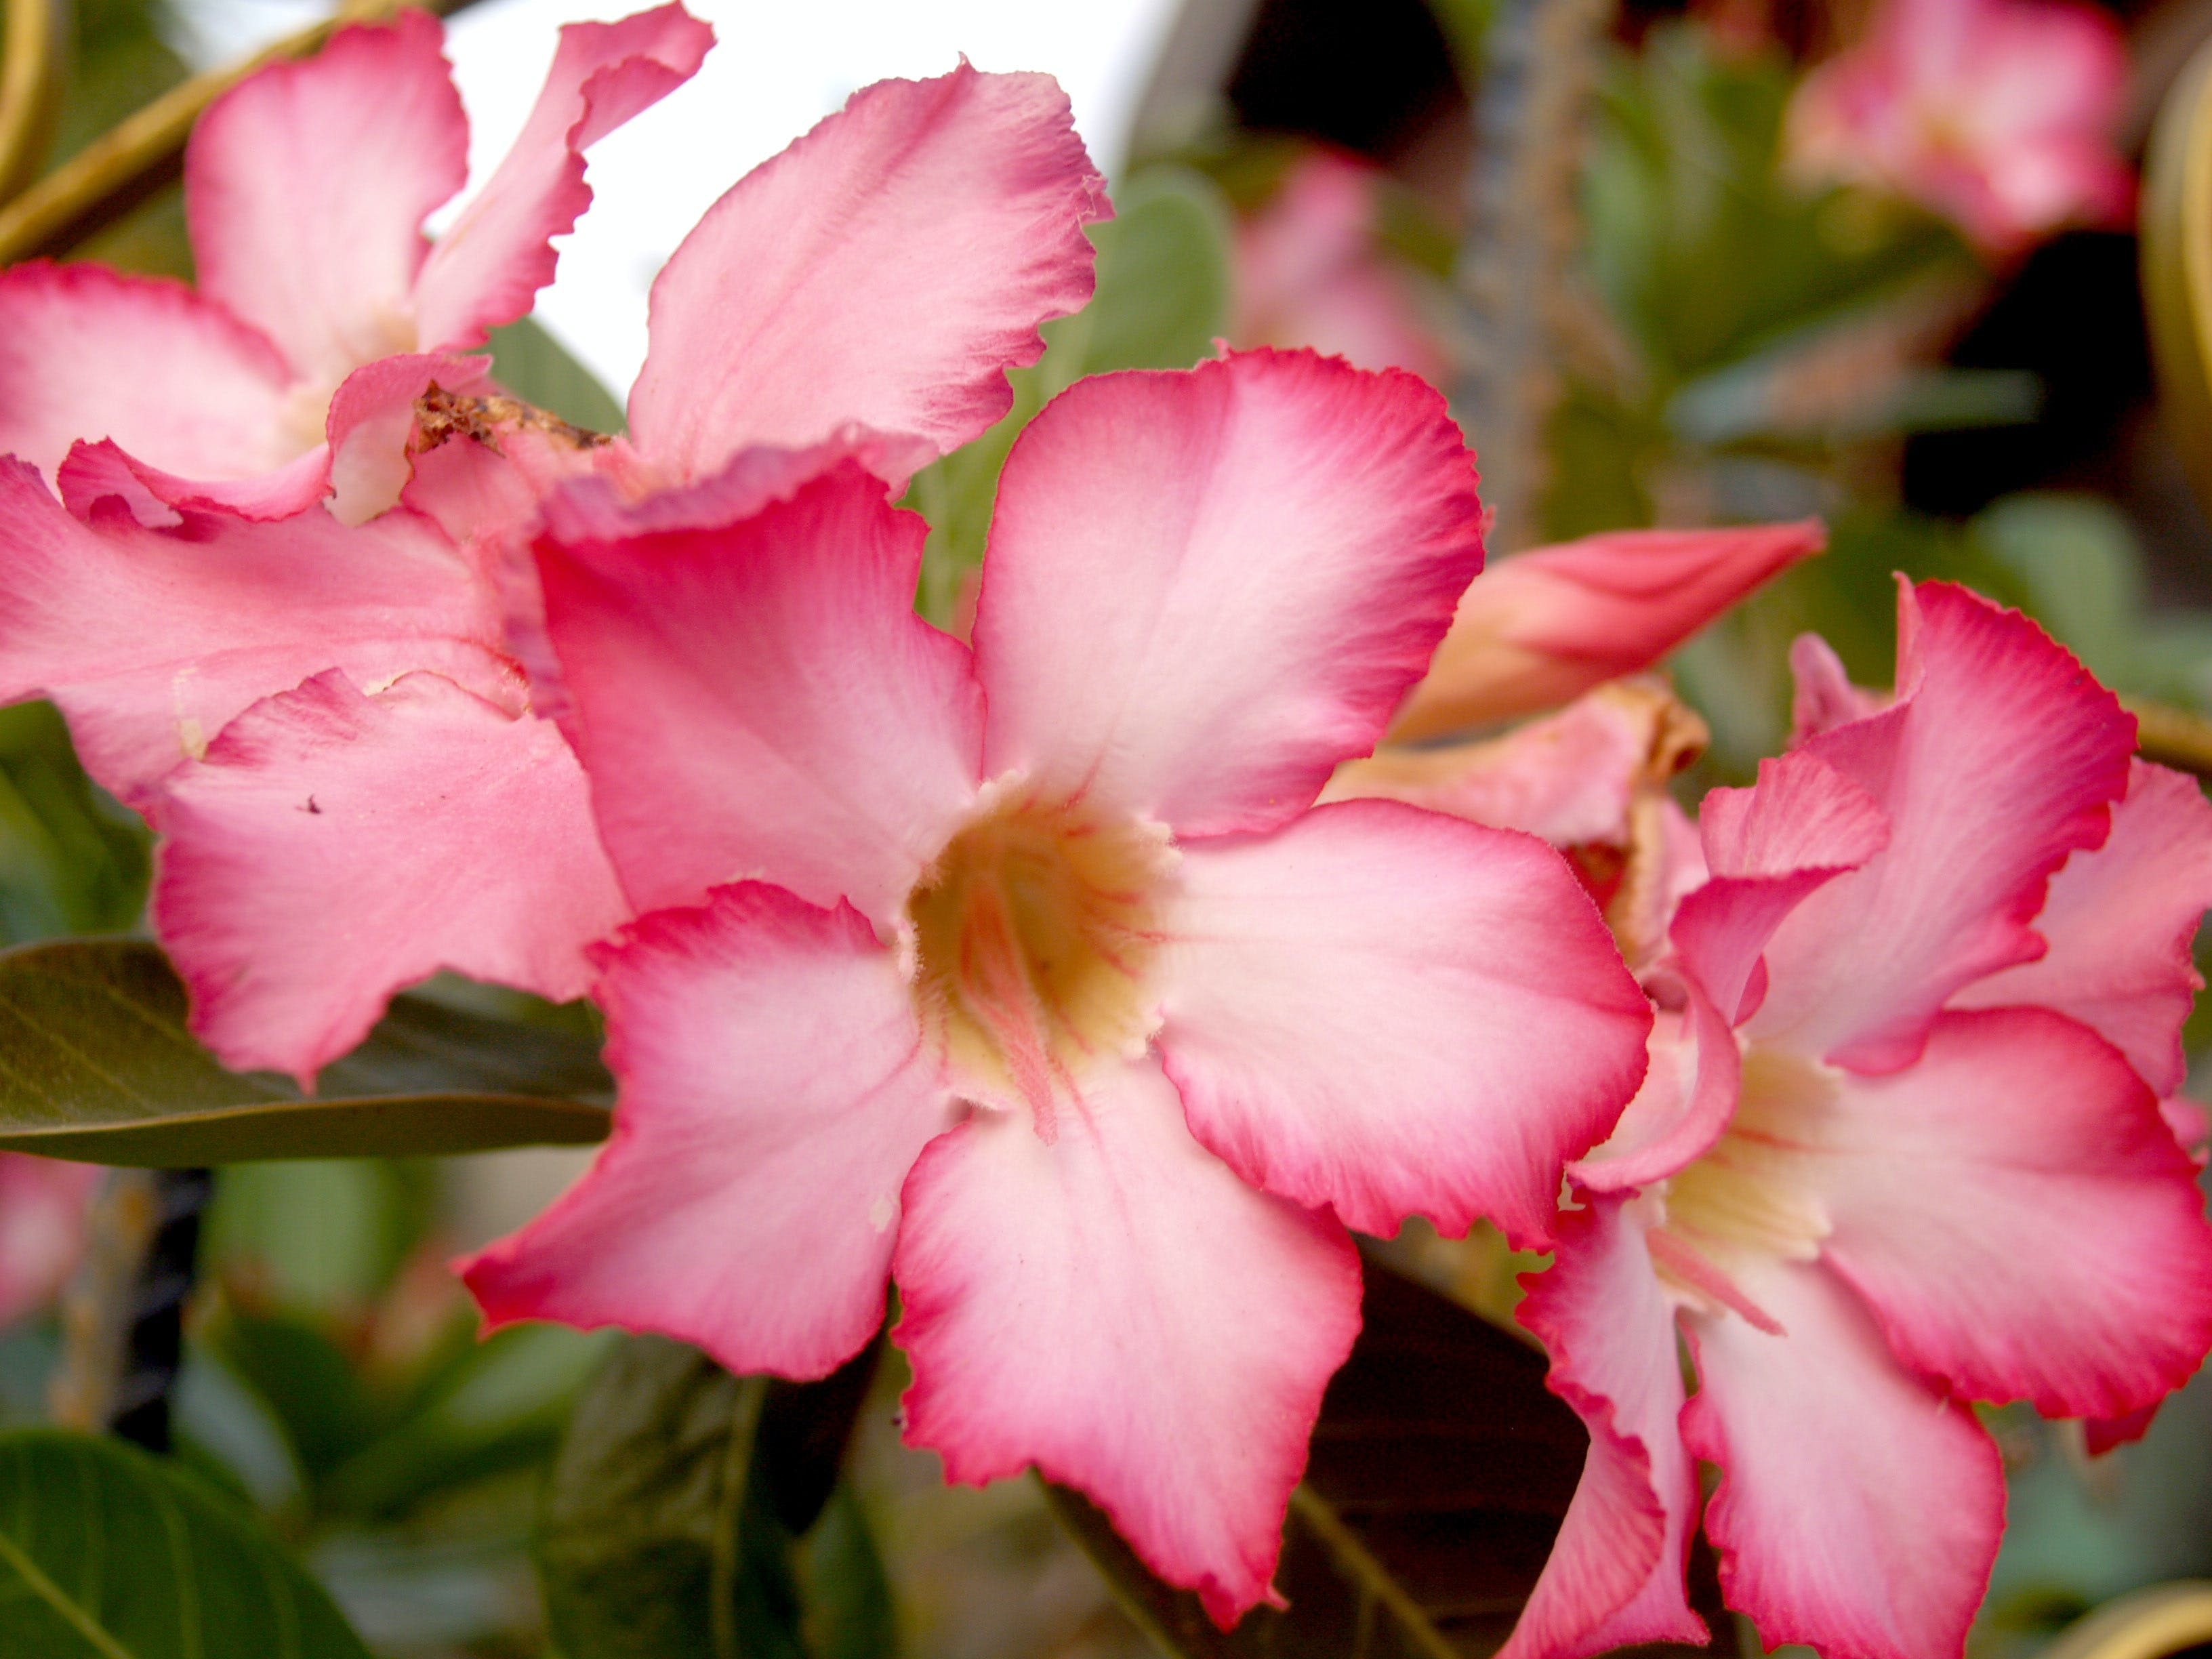 Selective Focus Photography of Pink Adenium Flowers in Bloom